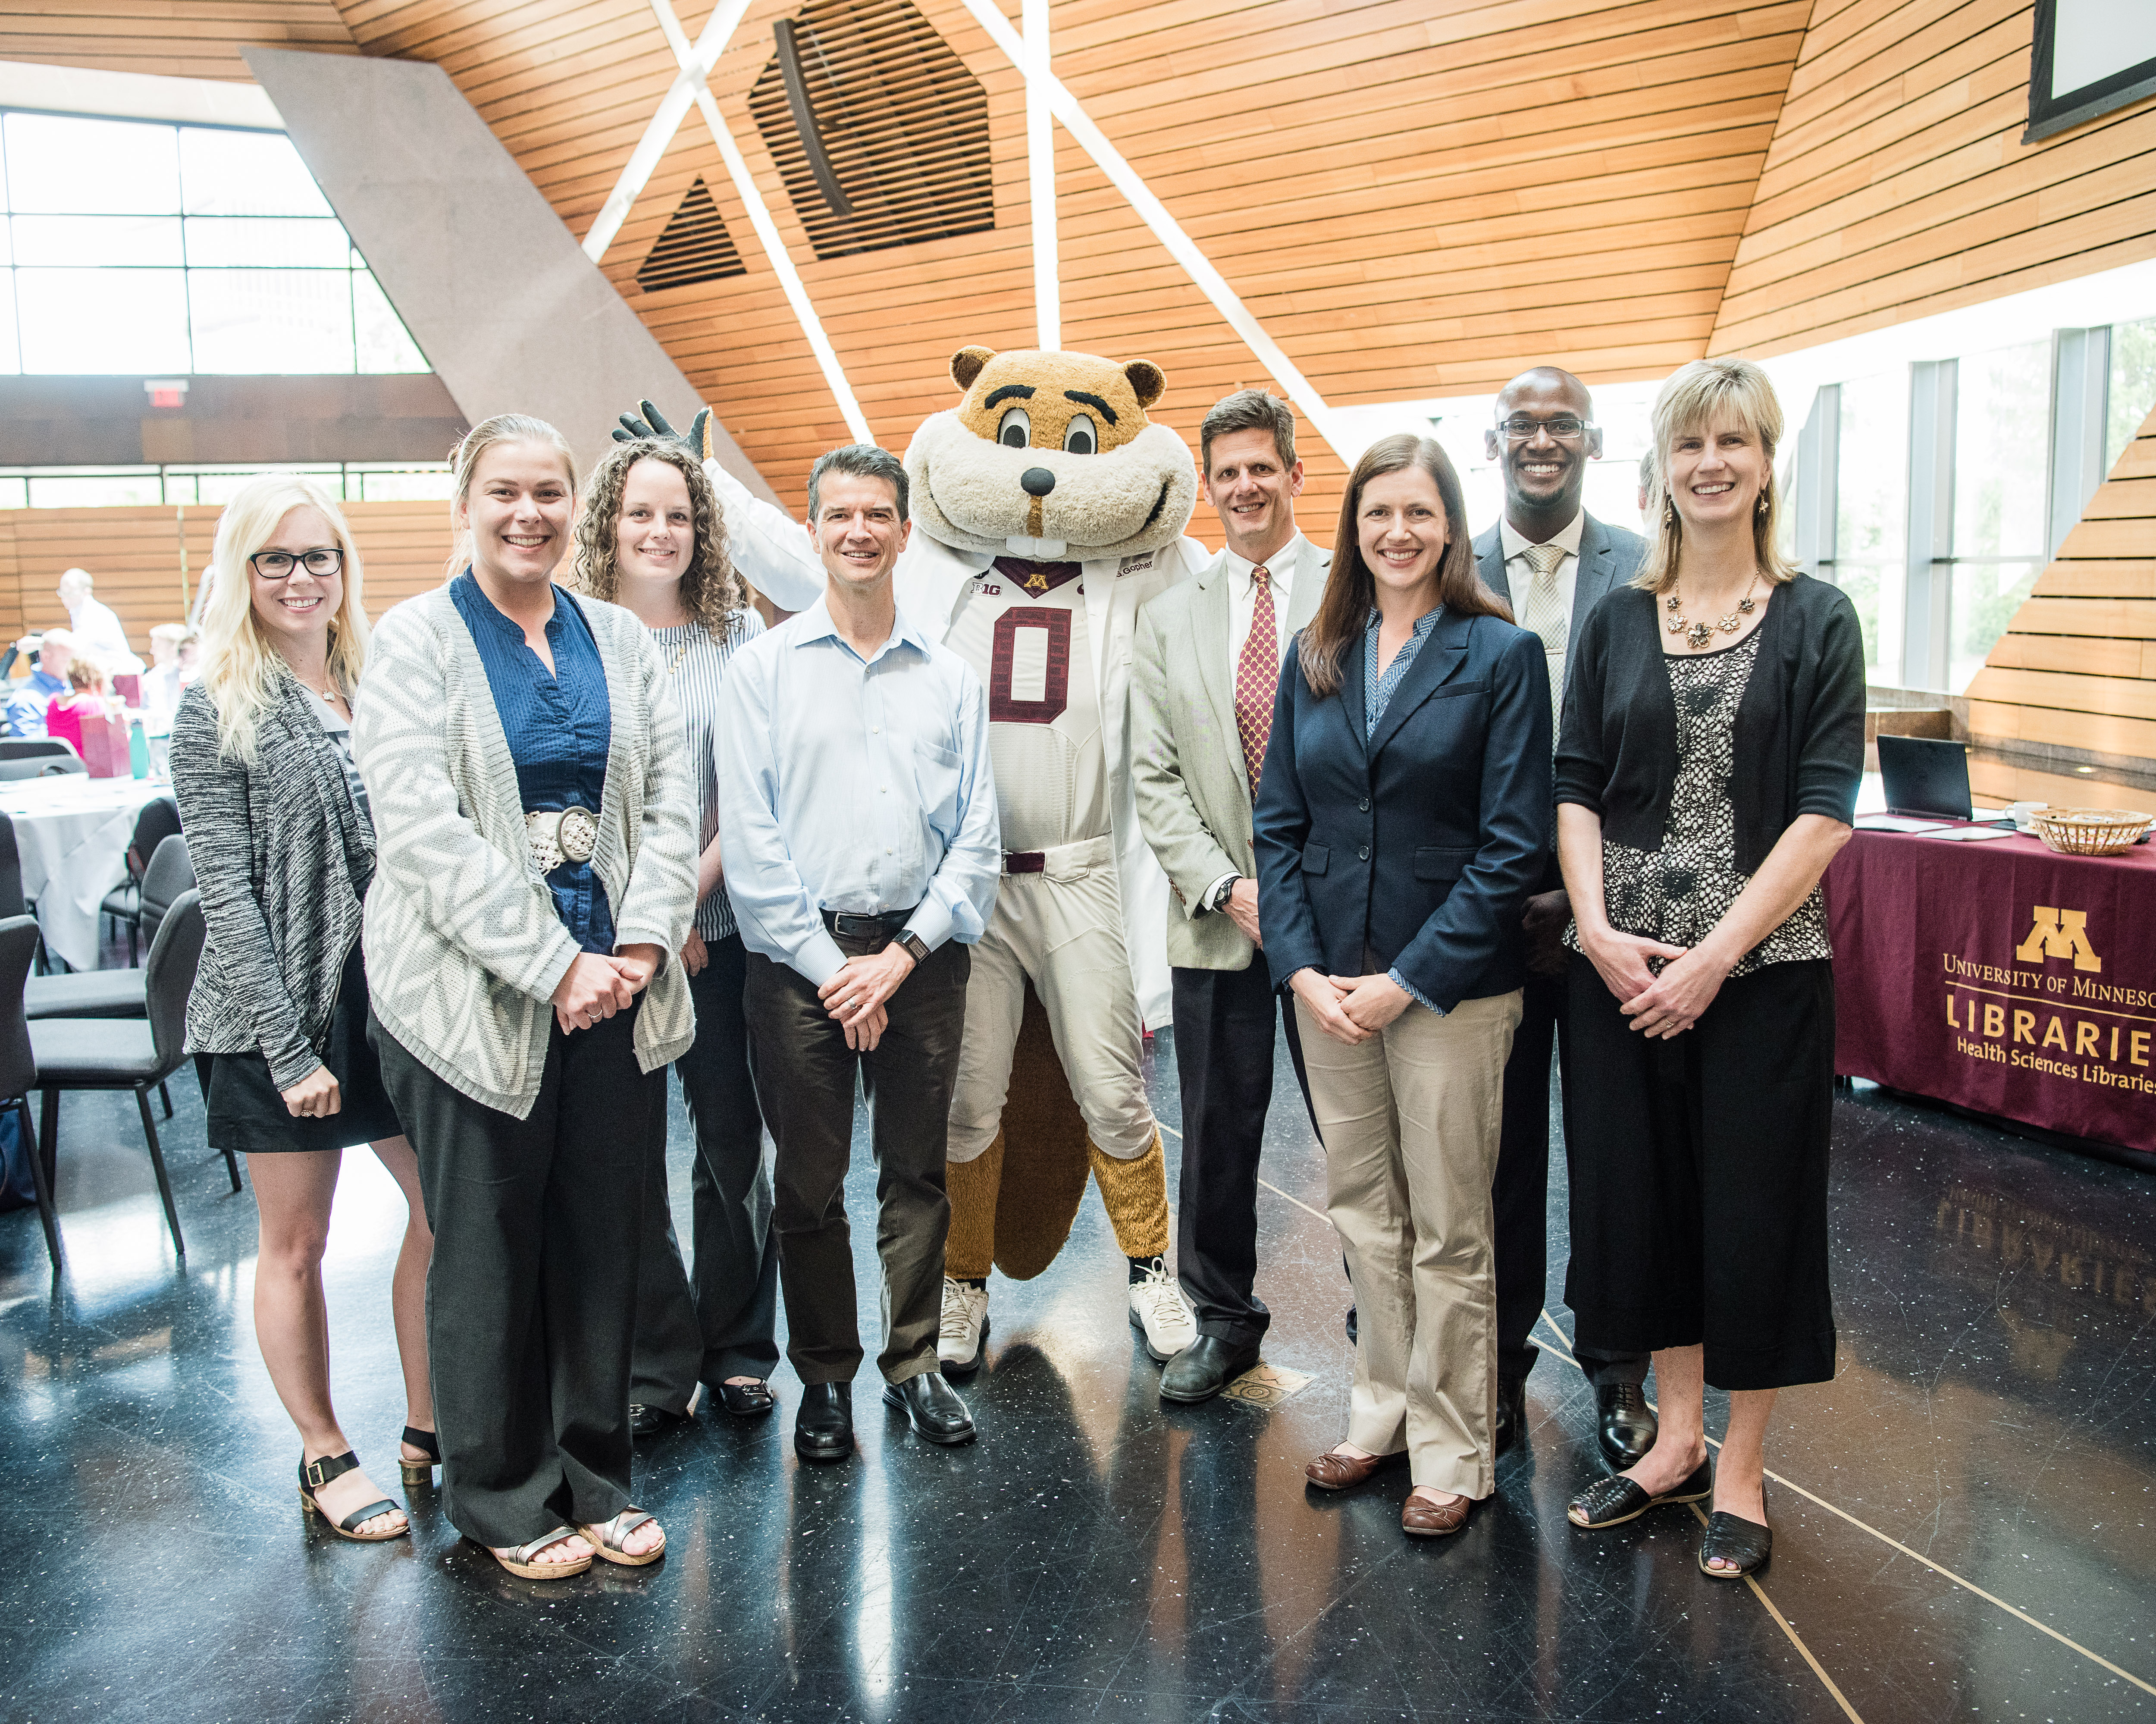 8 people in office attire standing posed with Goldy Gopher